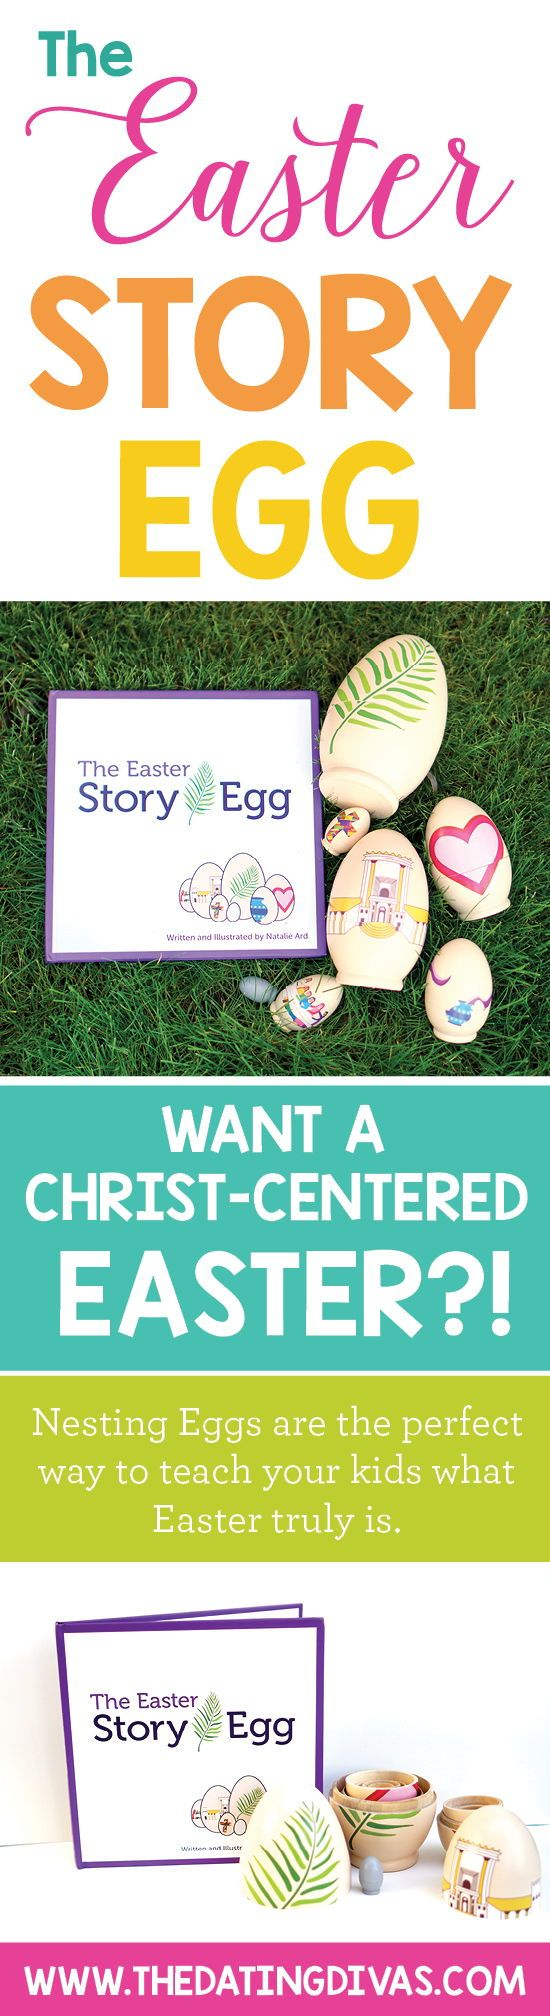 Celebrate the true meaning of Easter with a fun Christ-Centered Easter family tradition! The Easter Story Egg includes a hardcover book and 7 wooden nesting Eggs. It begins on Palm Sunday and ends on Easter Sunday. As the children open each Egg they will discover the Easter story and the journey of Jesus through Holy week.   Use Coupon Code DIVAS10 to get 10% OFF for a limited time!